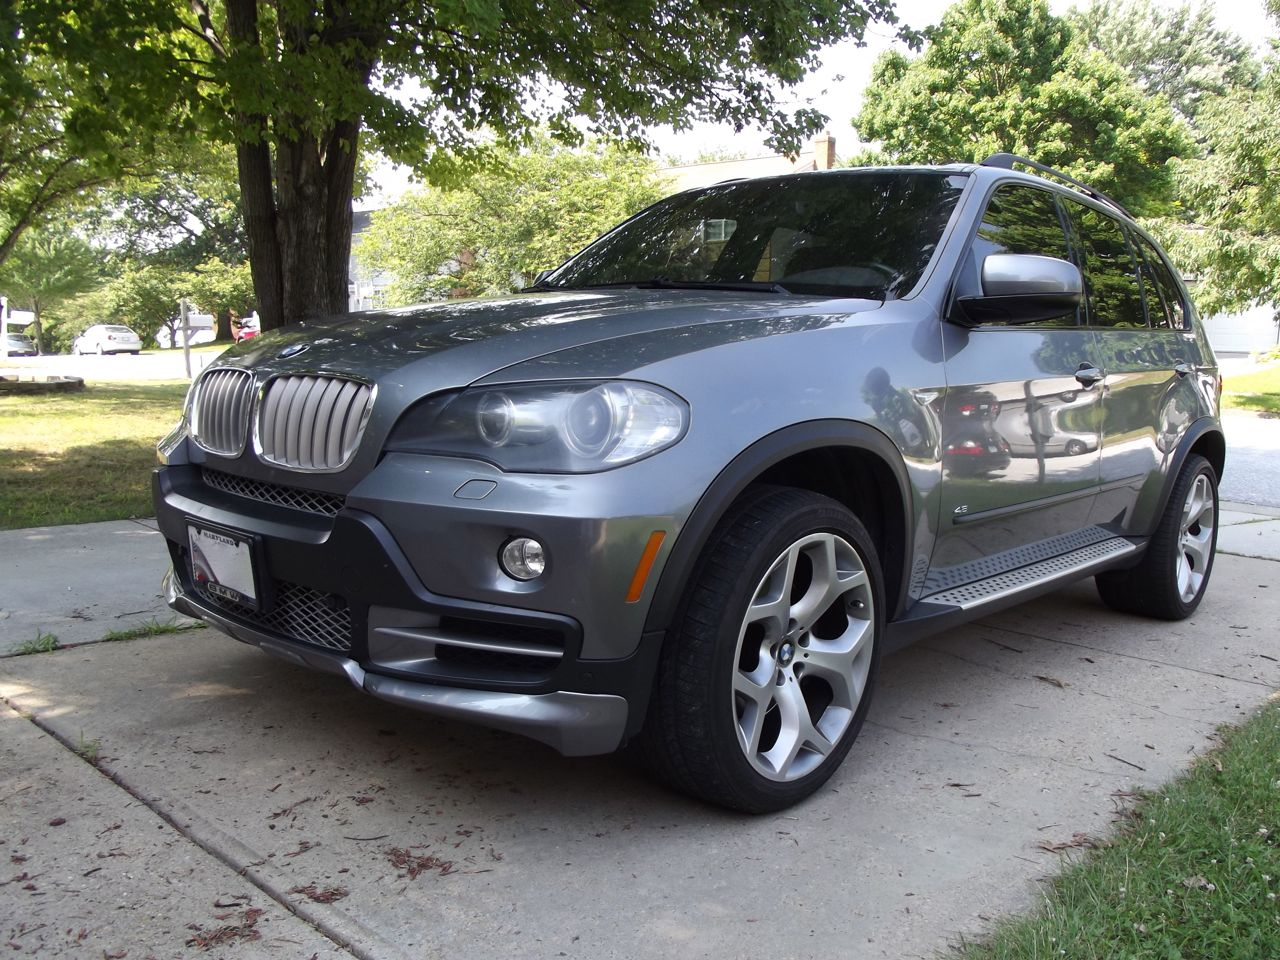 bmw x5 trailer hitch installation instructions